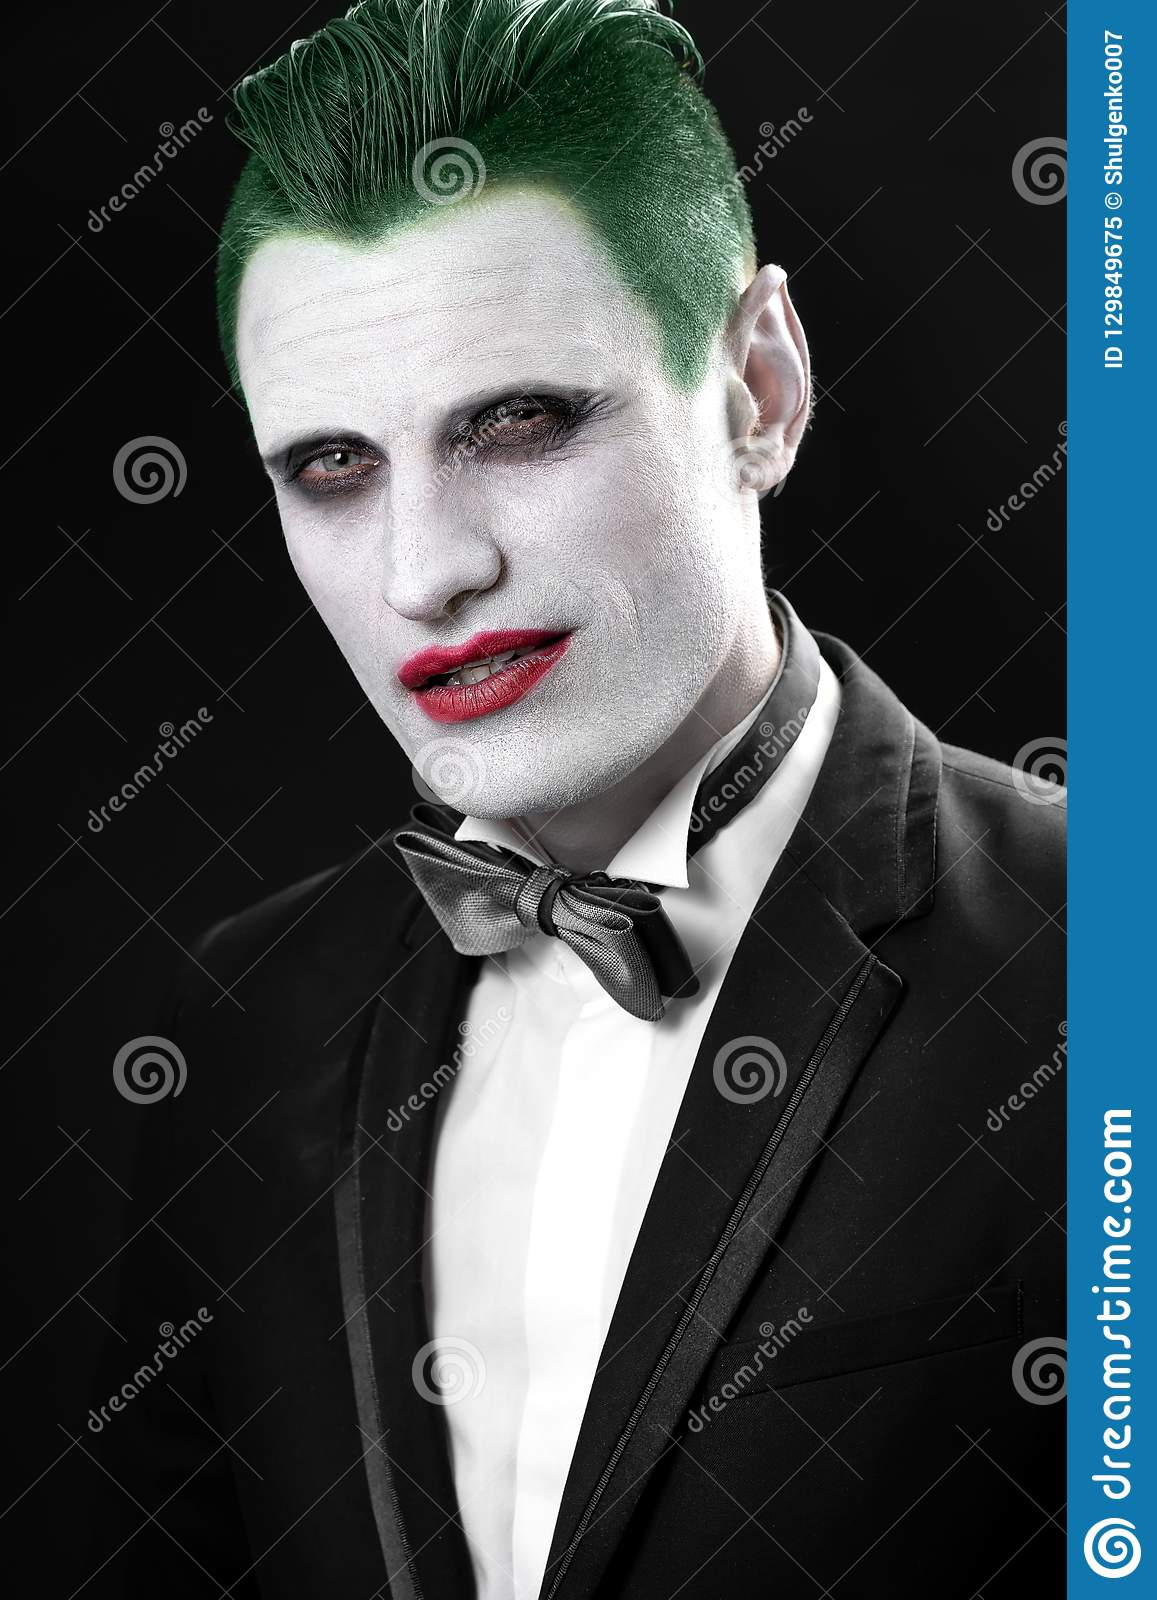 Portrait D\u0027un Joker Maquillage Pour Halloween Image Folle D